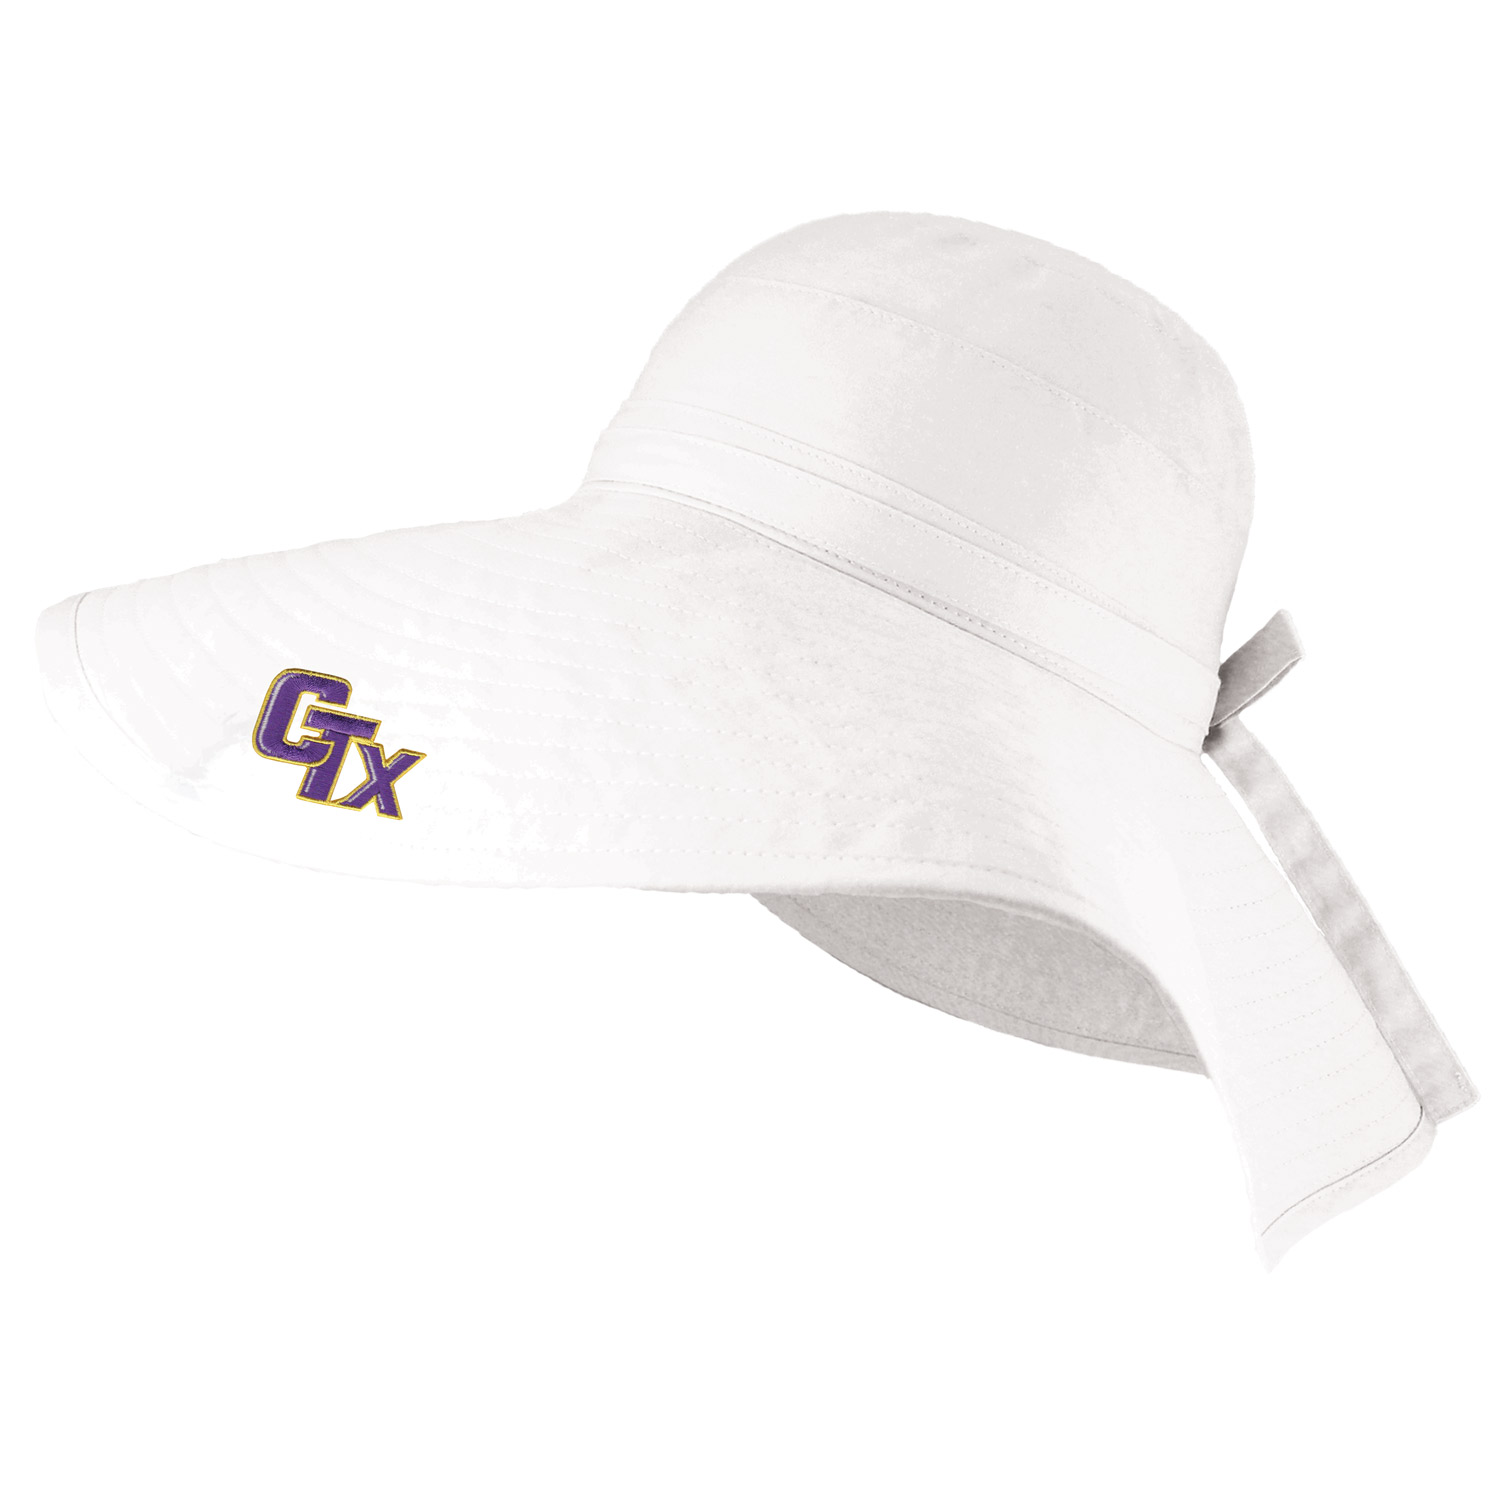 LogoFit - Bucket Women's Hat - White